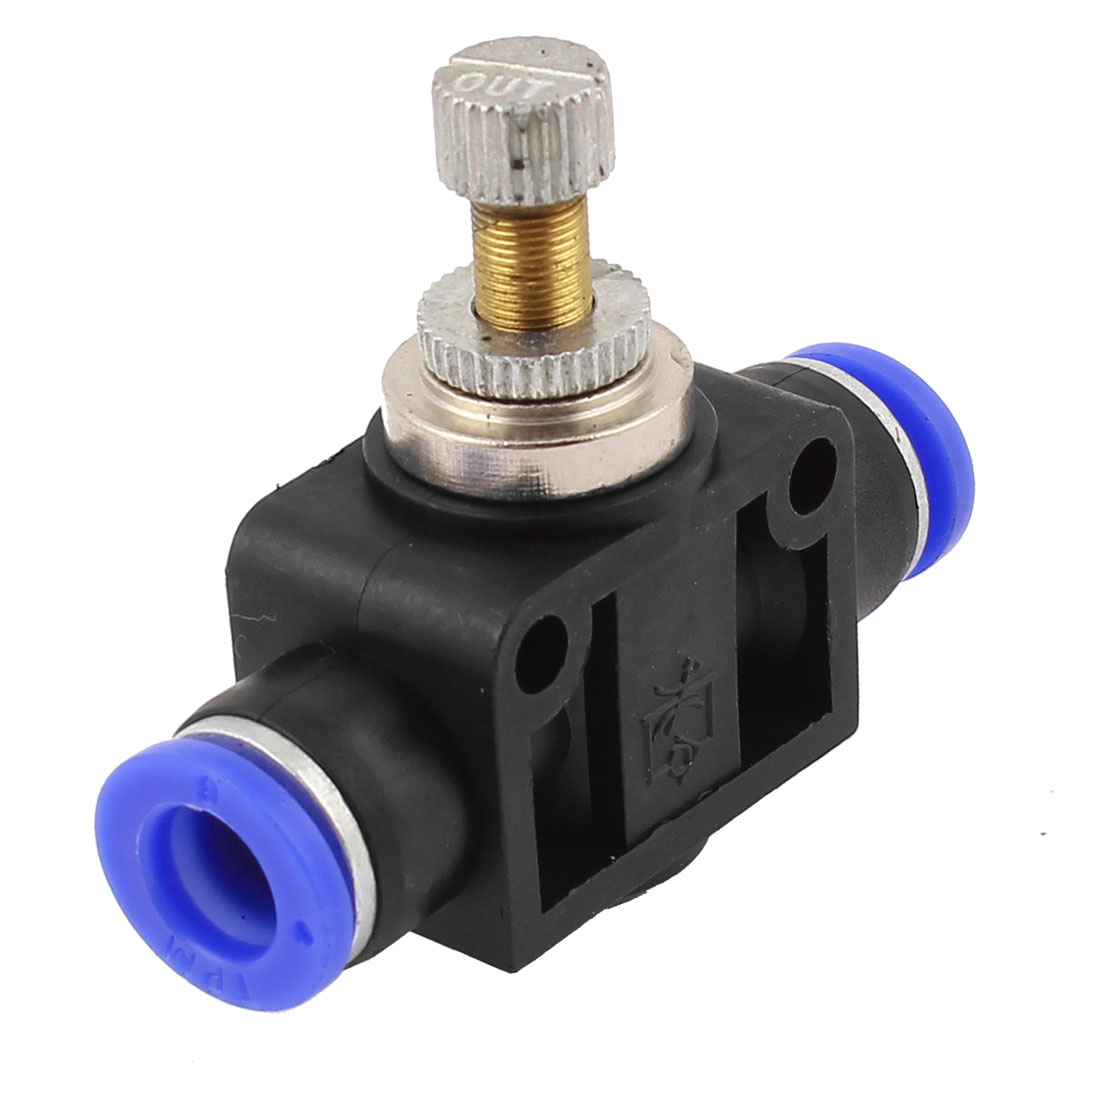 Push In Type 8mmx8mm Tube Speed Control Quick Connector Pneumatic Fitting